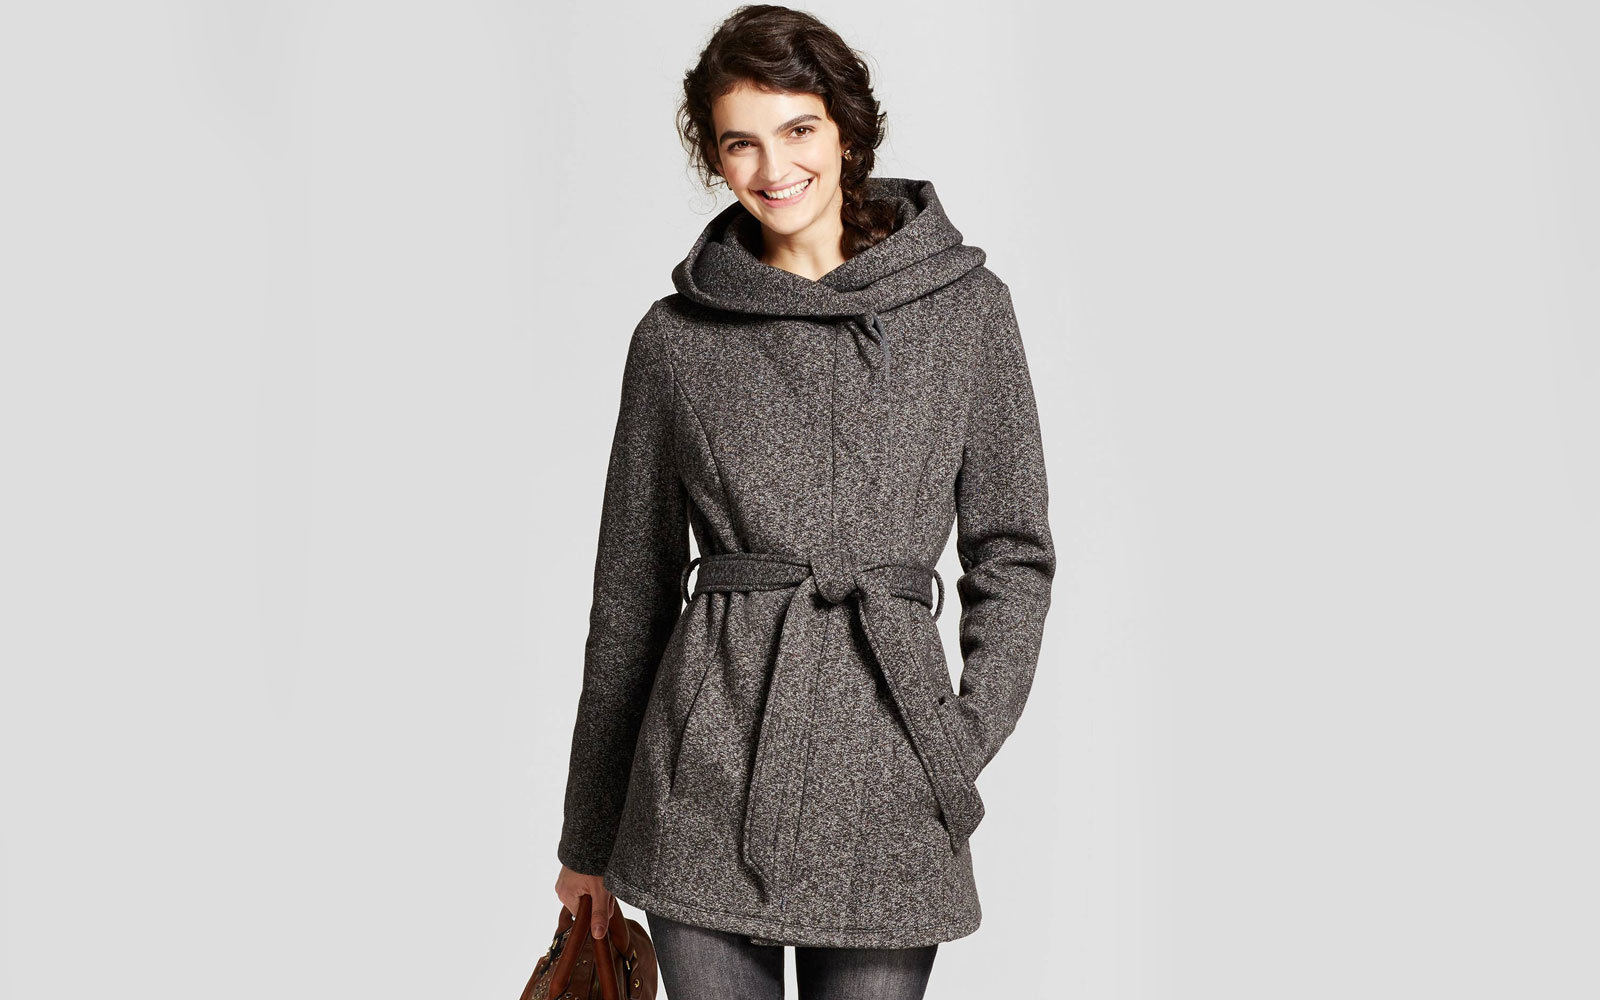 dc659e36ed4 Women s Fleece Wrap Jacket. Target A New Day ...